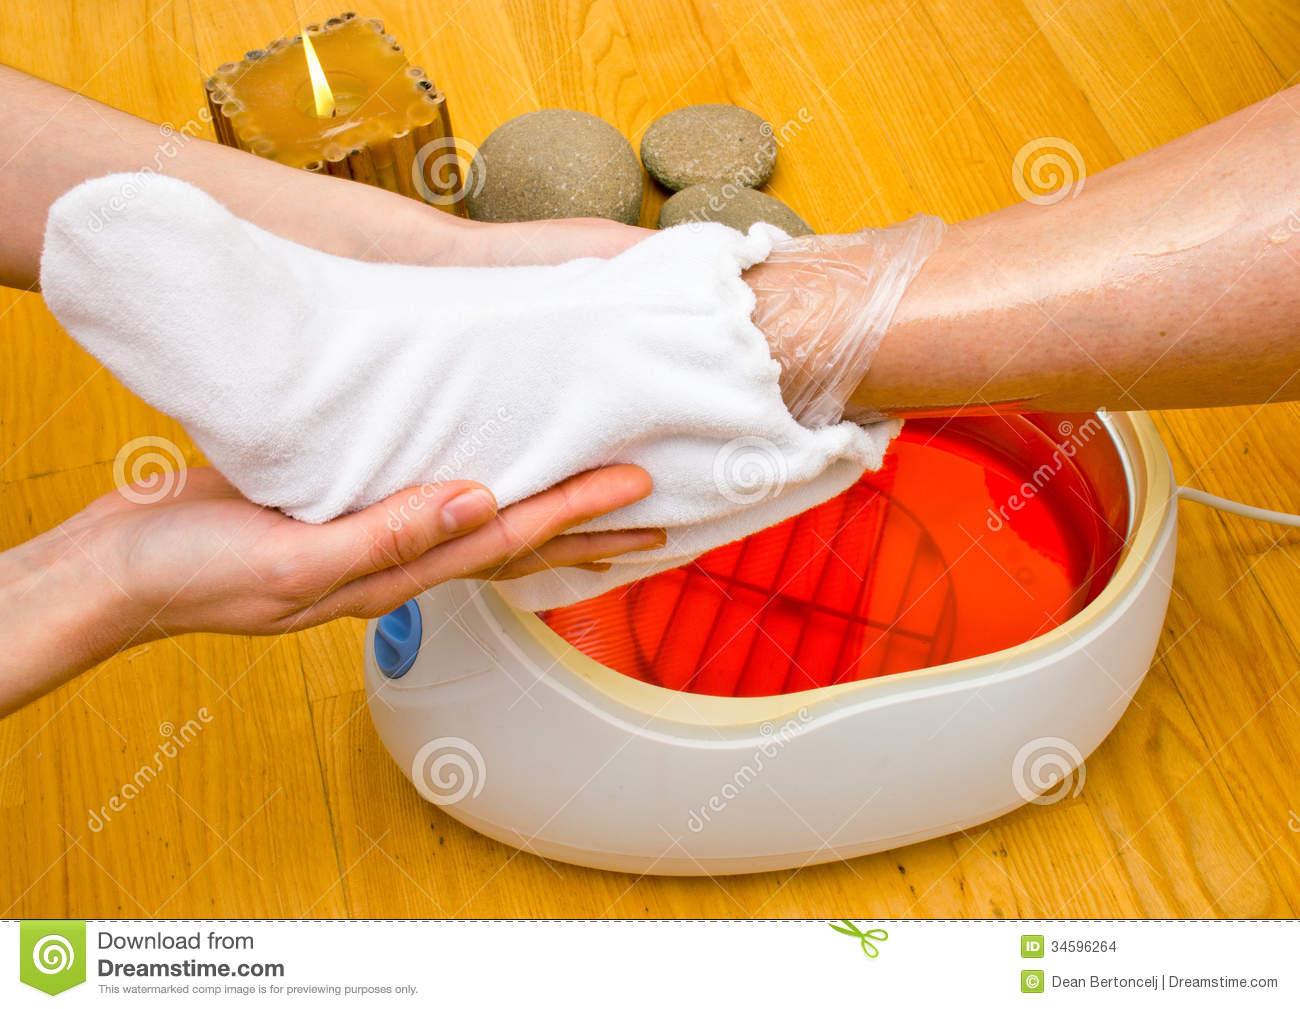 Woman Foot In Paraffin Bath At The Spa Stock Photo - Image: 34596264 for Paraffin Wax Foot Bath  239wja